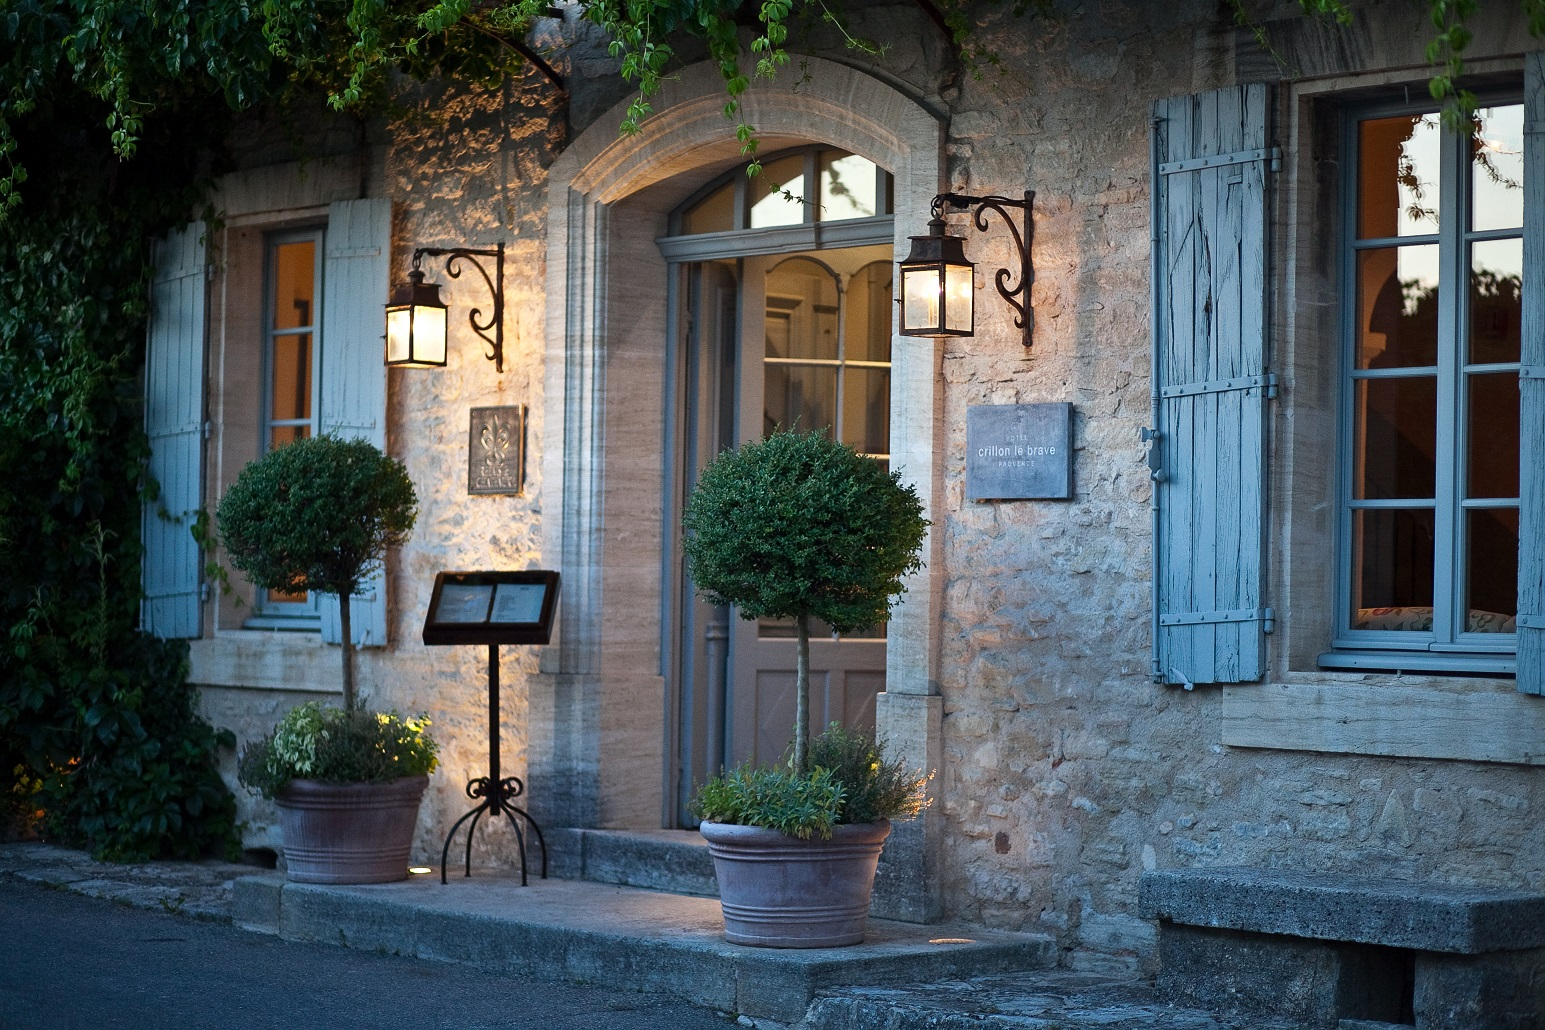 hotel crillon le brave in provence france white blancmange. Black Bedroom Furniture Sets. Home Design Ideas